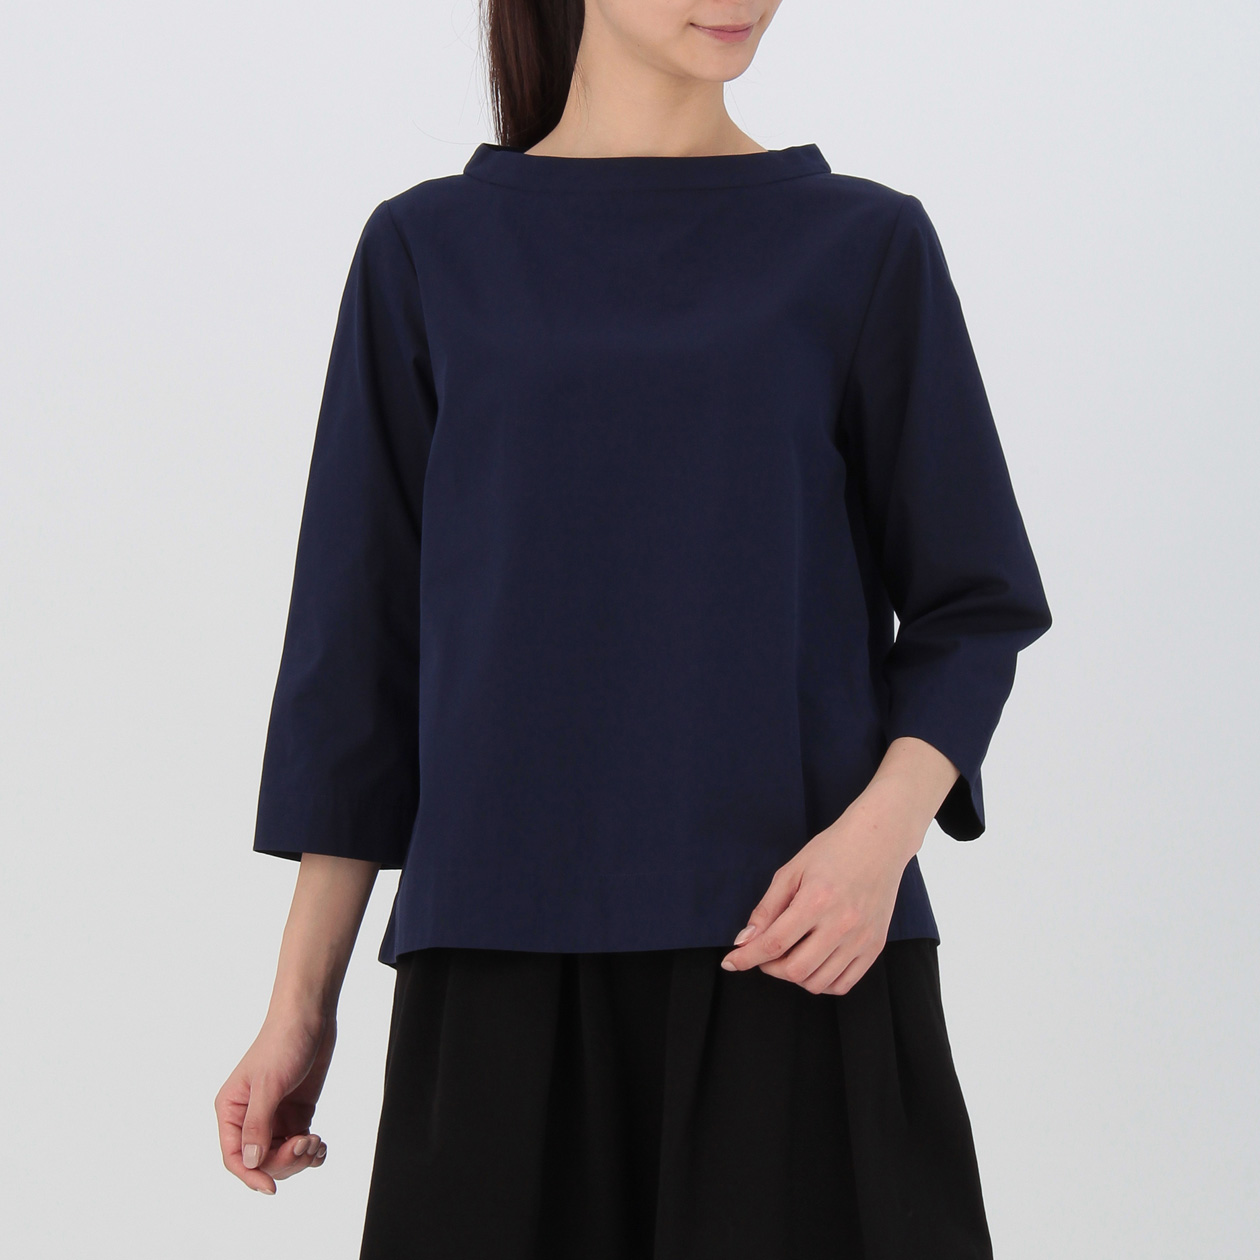 OGC BROAD BLOUSE